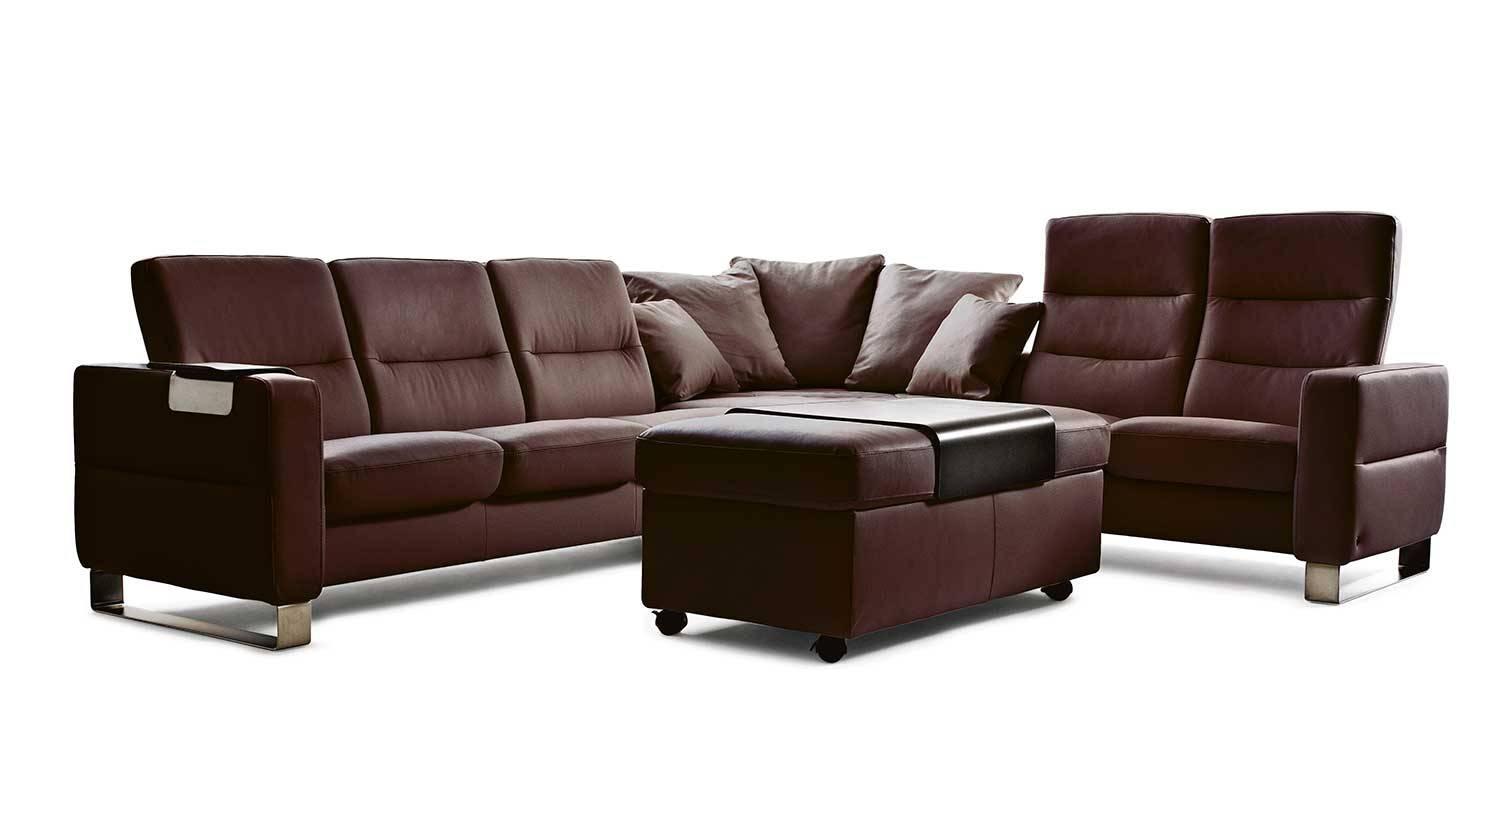 Circle Furniture - Wave Stressless Sectional | Ekornes Sofas regarding Ekornes Sectional Sofa (Image 9 of 30)